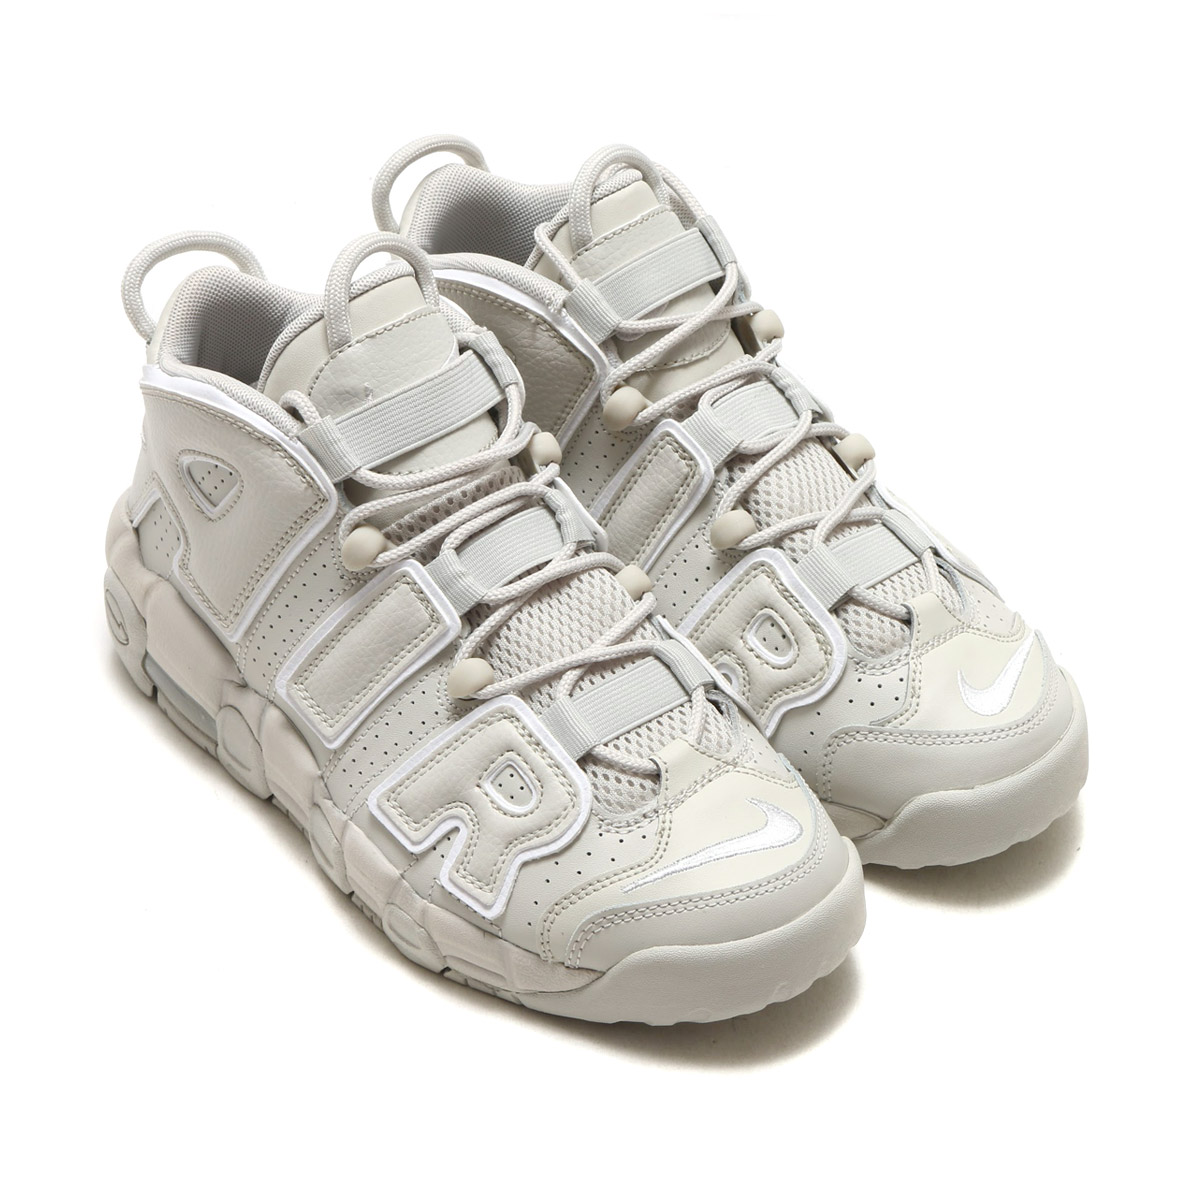 quality design c673e 9dca1 Nike air more up tempo GS is the first appearance in the times when  basketball-style to be blown off highly from the 1980s through the 90s was  popular.